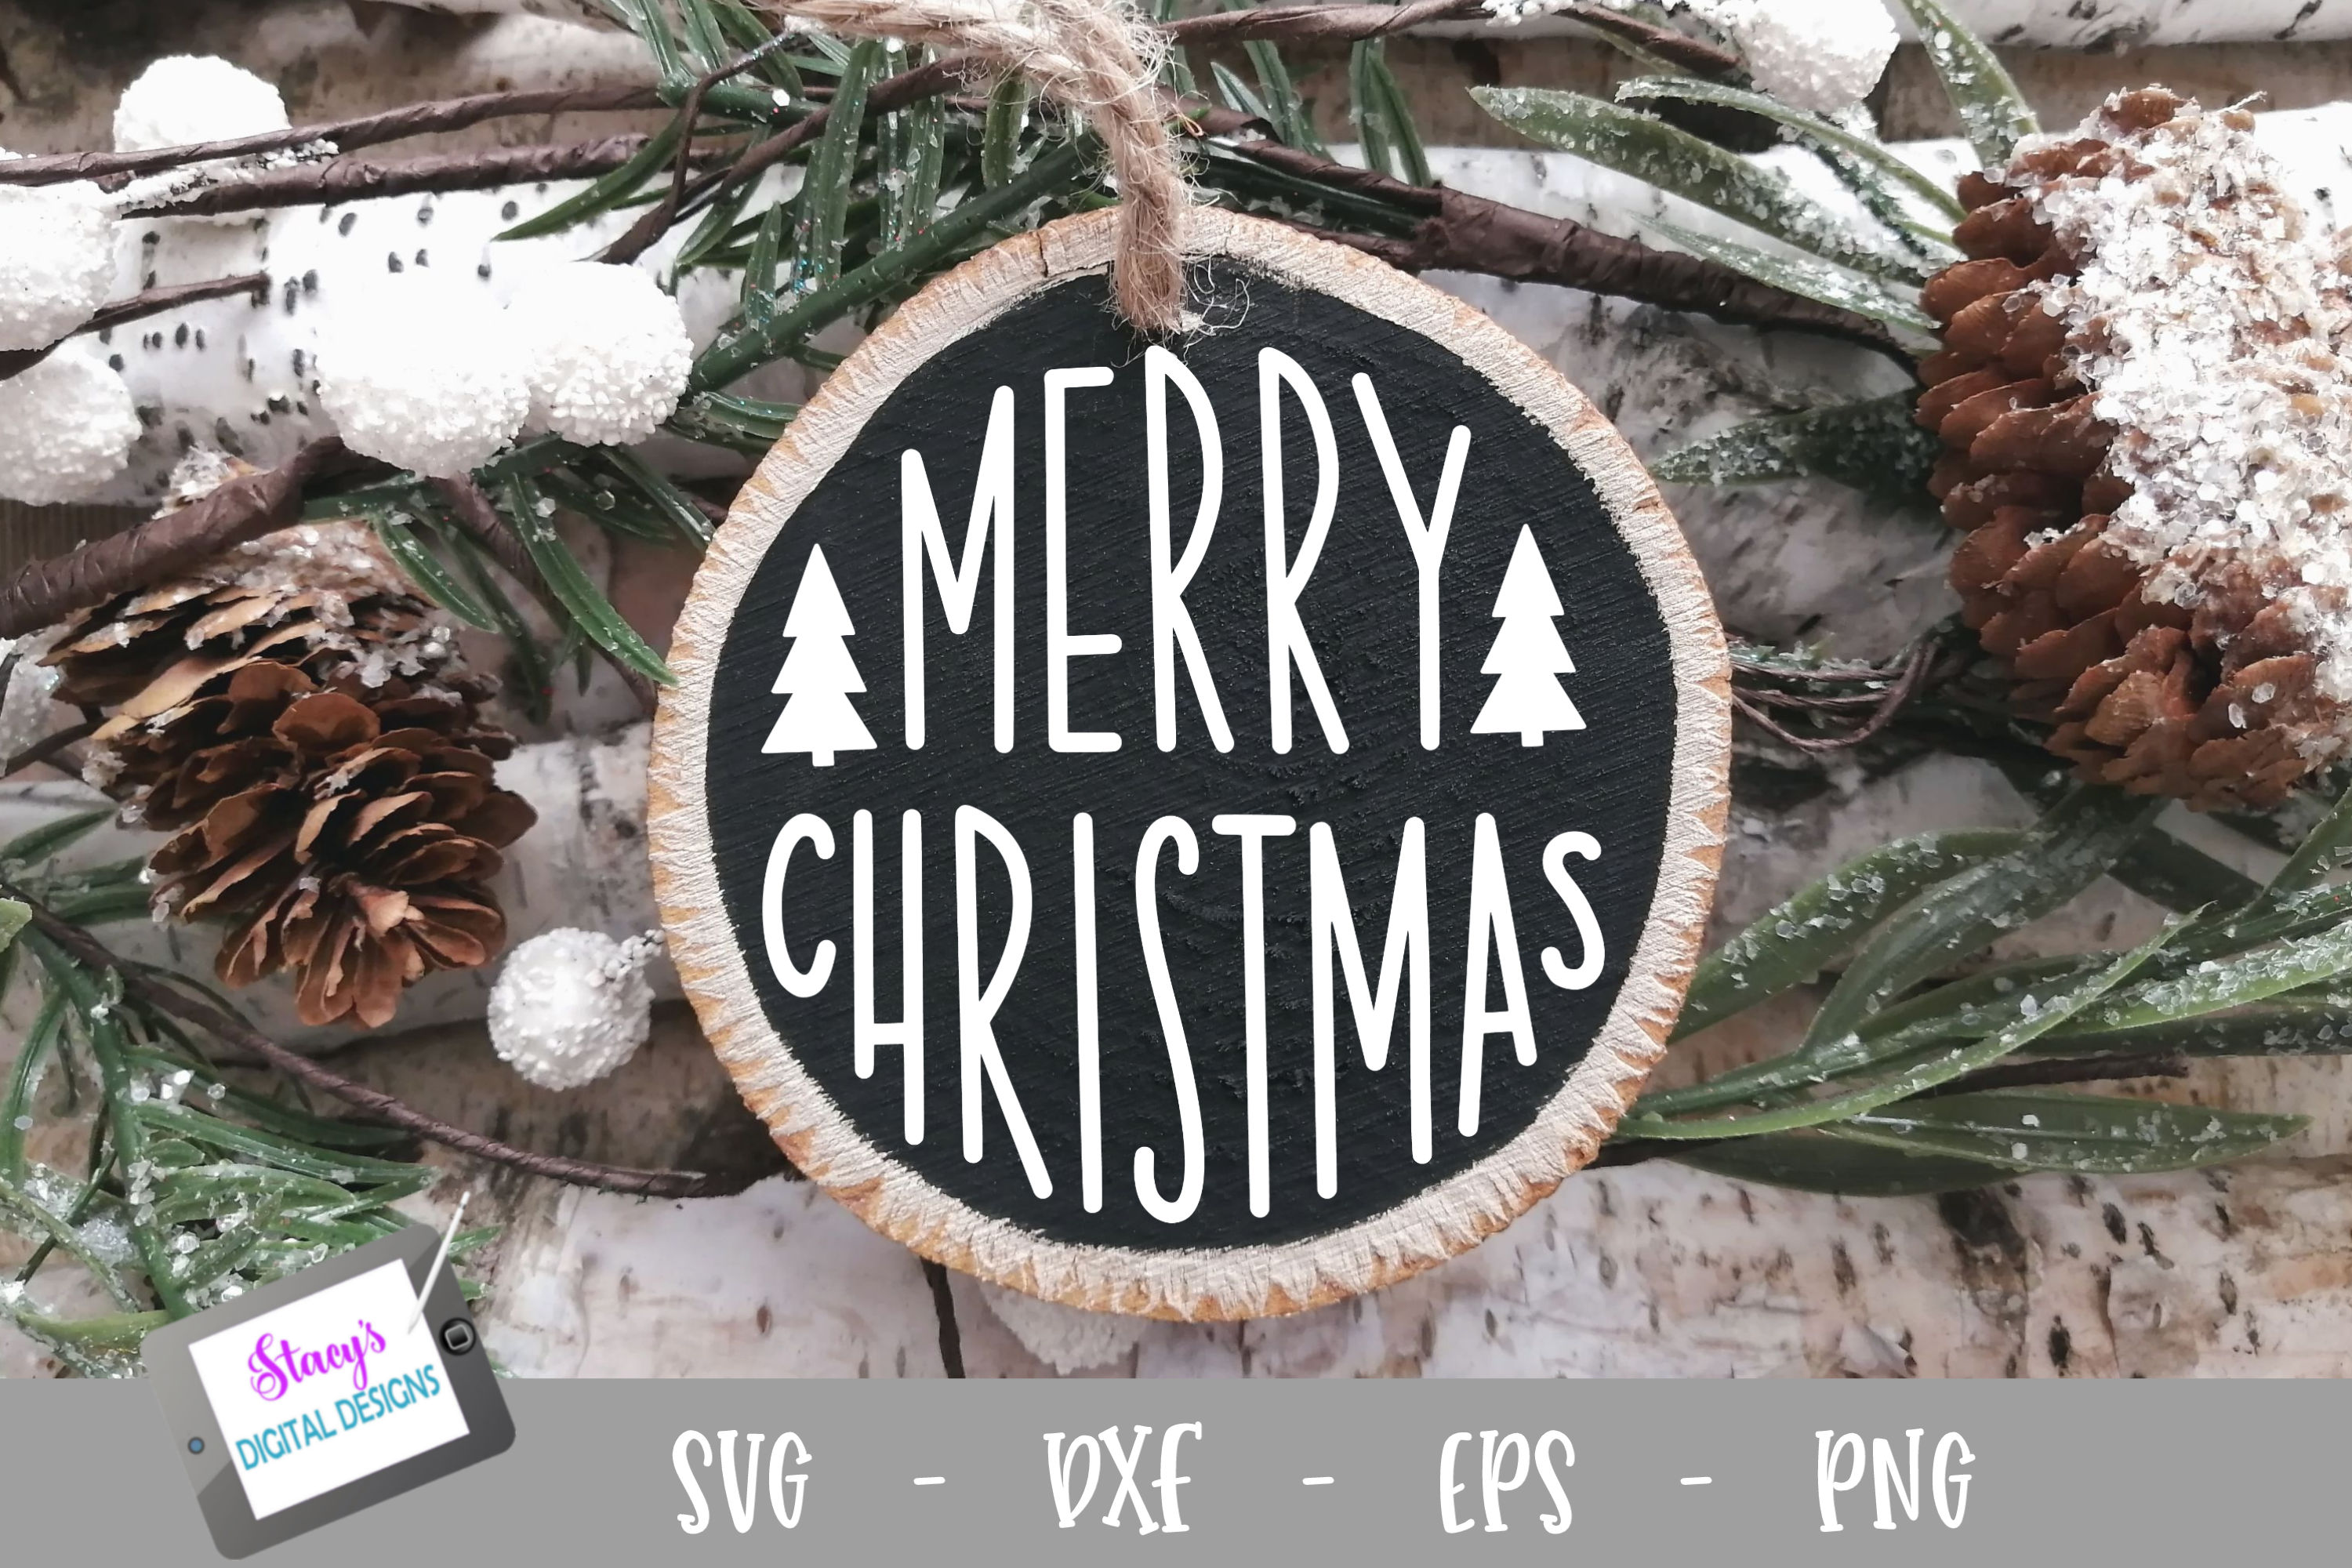 Christmas Ornament SVG - Merry Christmas - Round example image 1